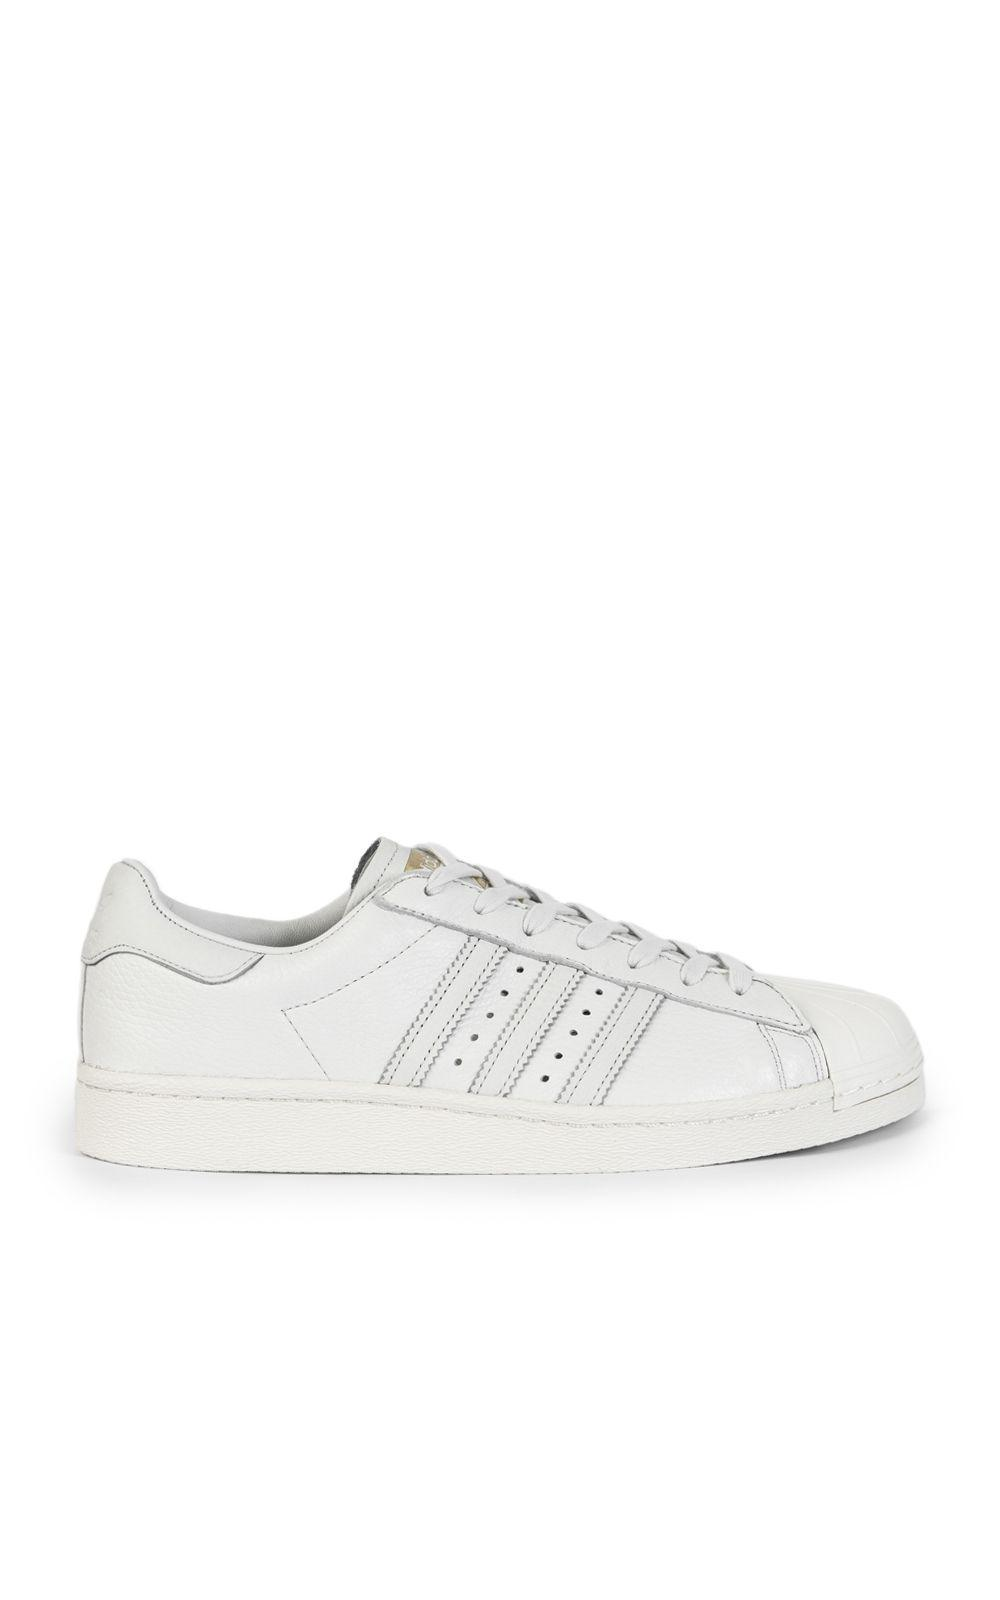 cheaper be859 03797 Gallery. Previously sold at Footshop · Mens Adidas Superstar ...